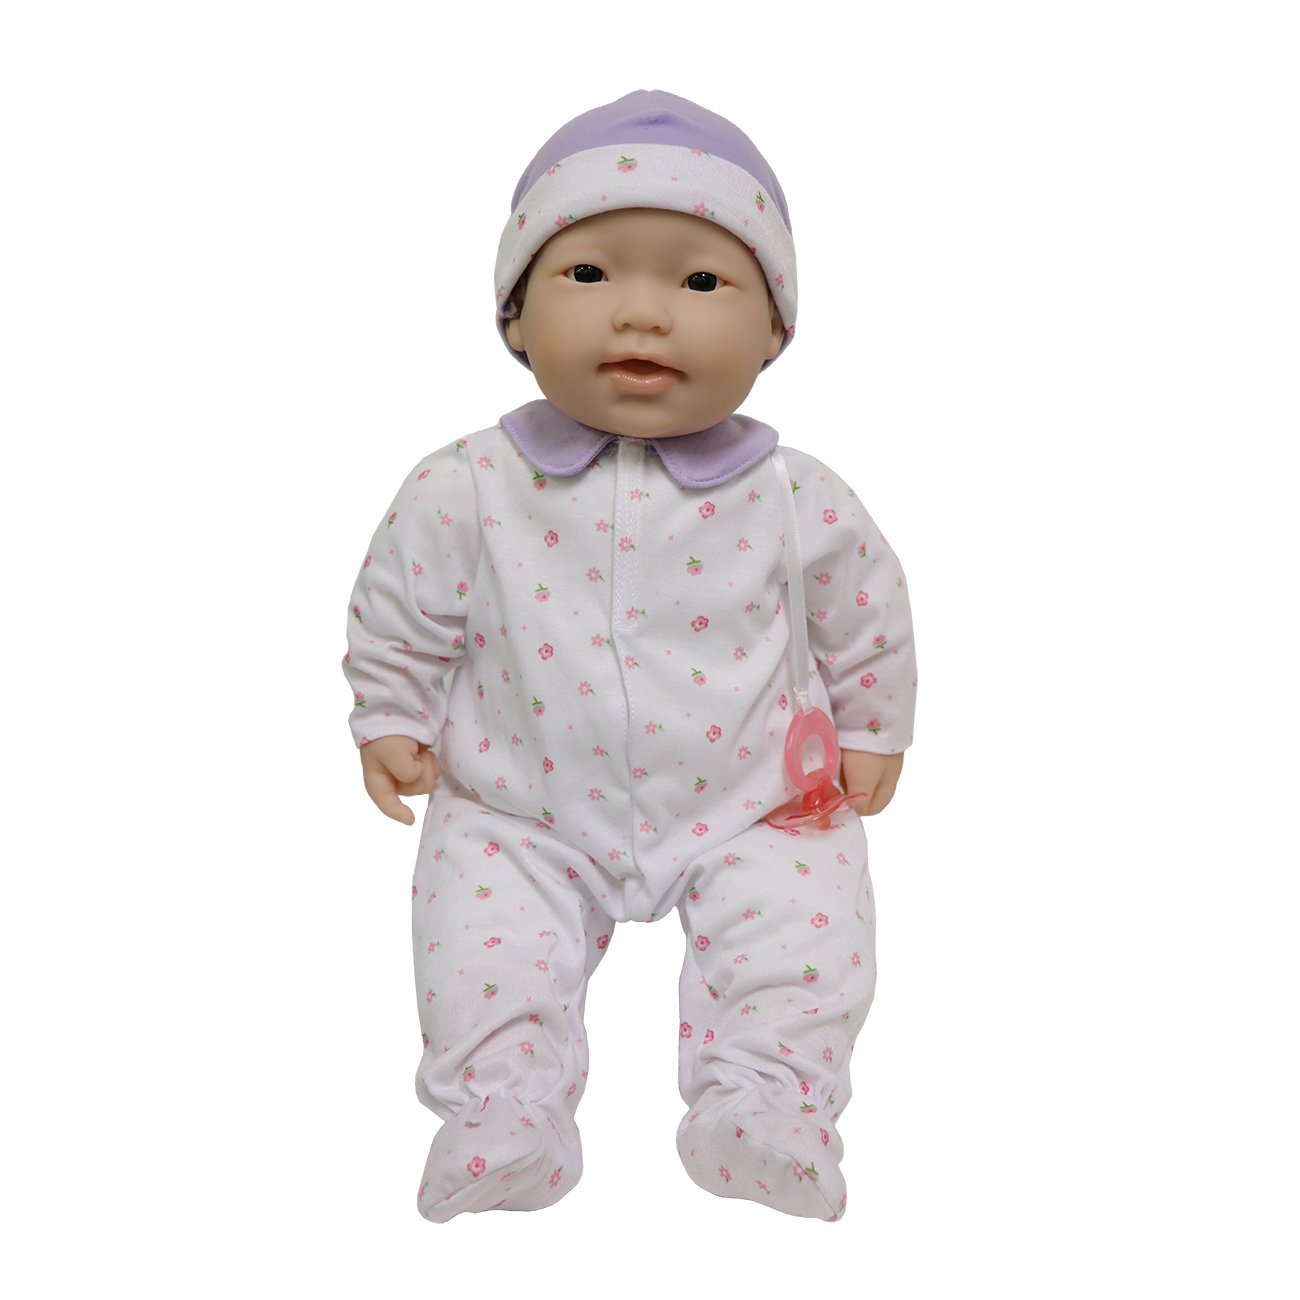 Dolls Jc Toys Asian La Baby 20 Inch Soft Body Pink Play